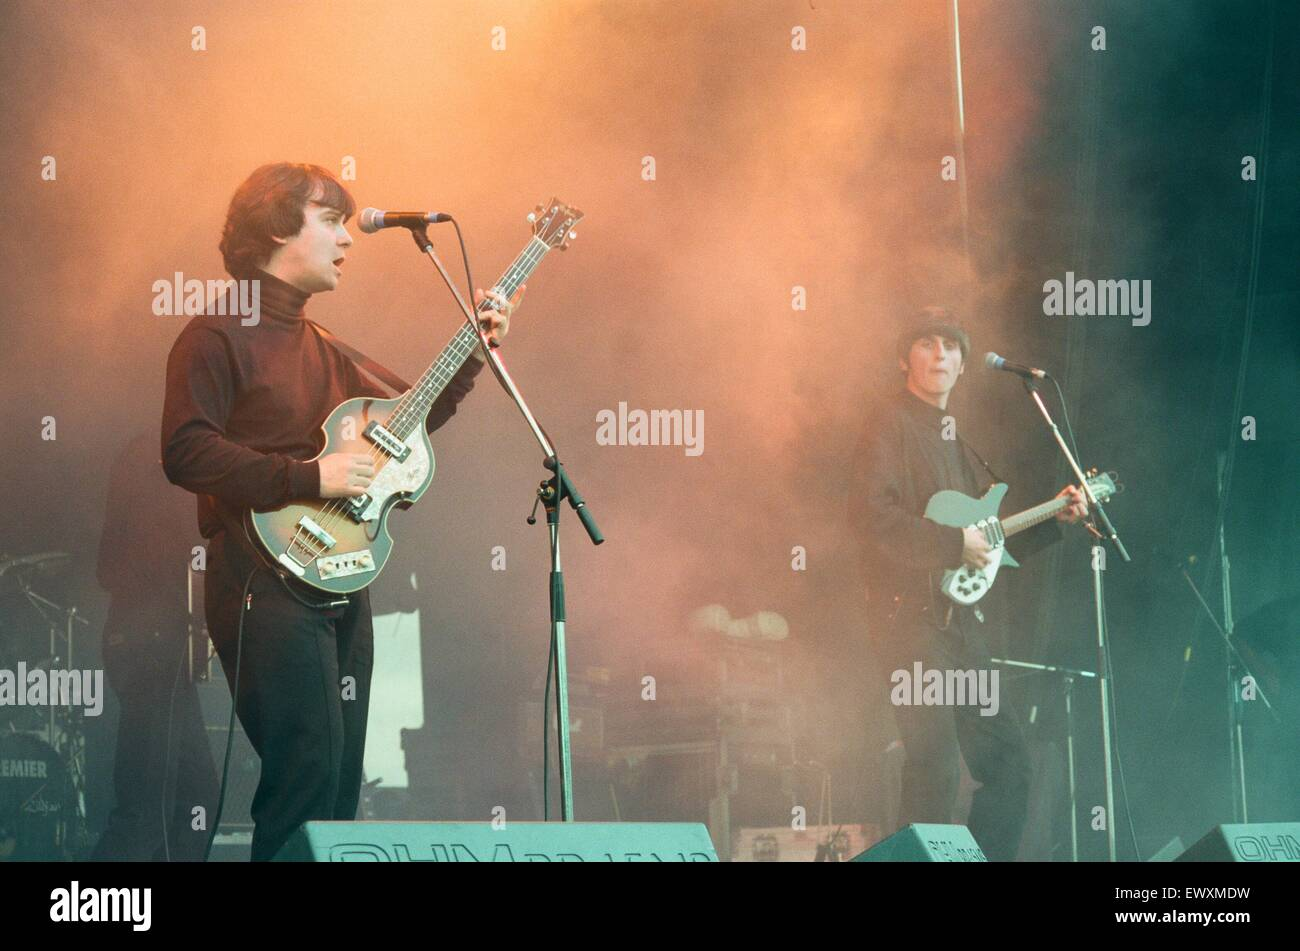 A 60's and 70's concert featuring look-a-like bands Beatlemania and Bjorn Again was held at Ormesby Hall - Stock Image